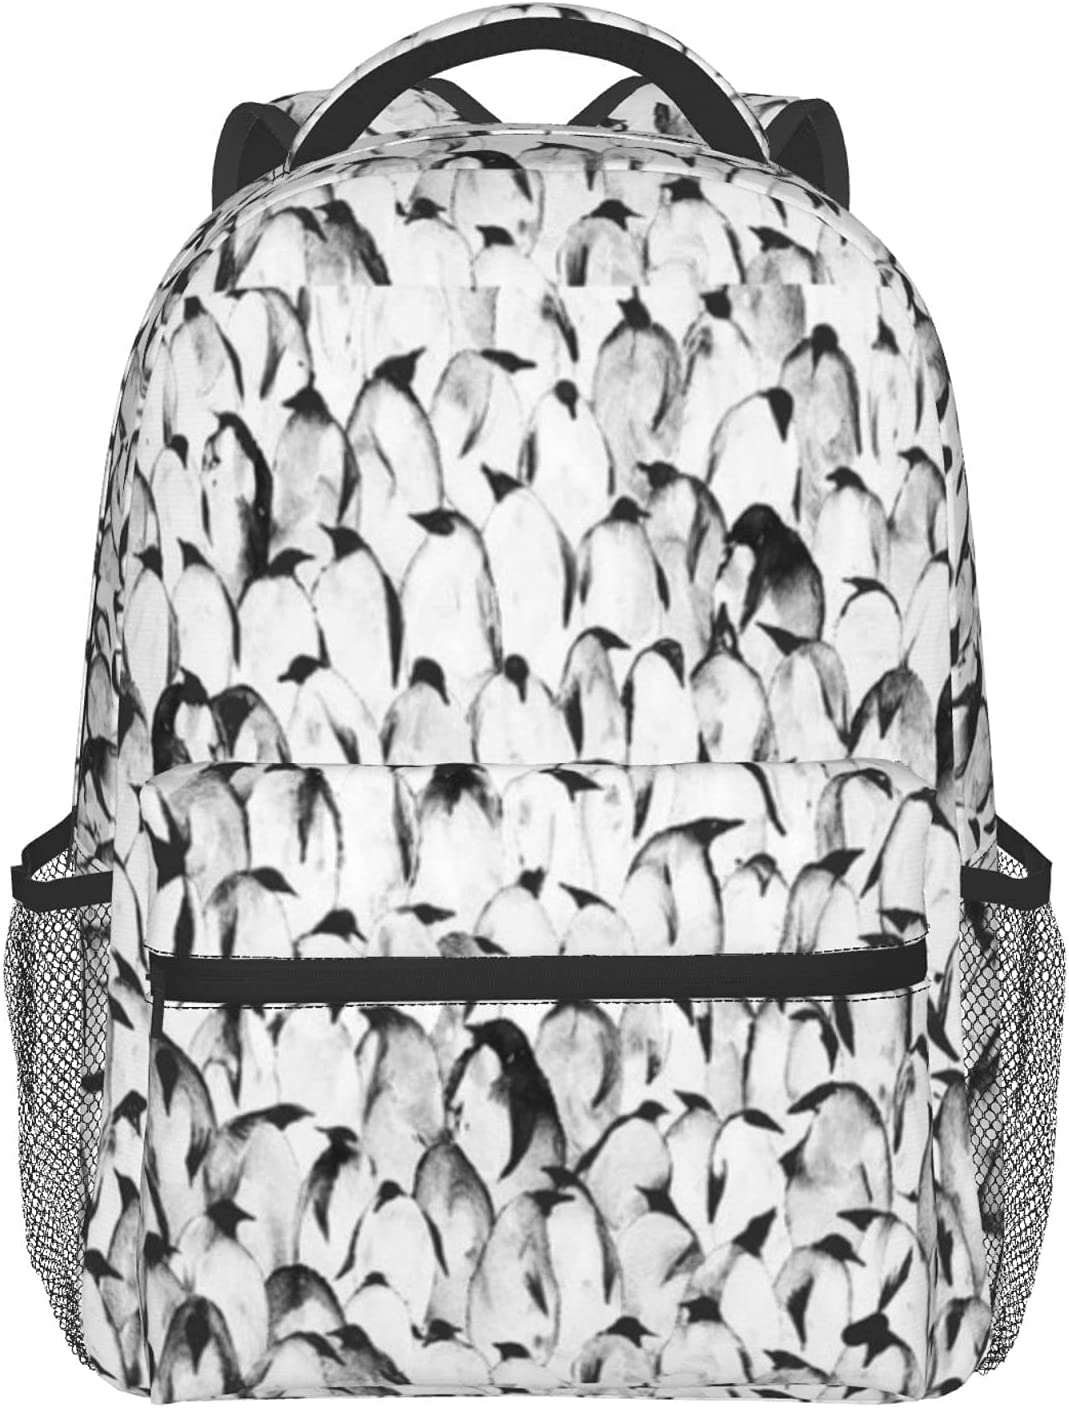 Penguin Bag New York Mall Waterproof Student Laptop Dura Extra Backpack Large-scale sale Casual